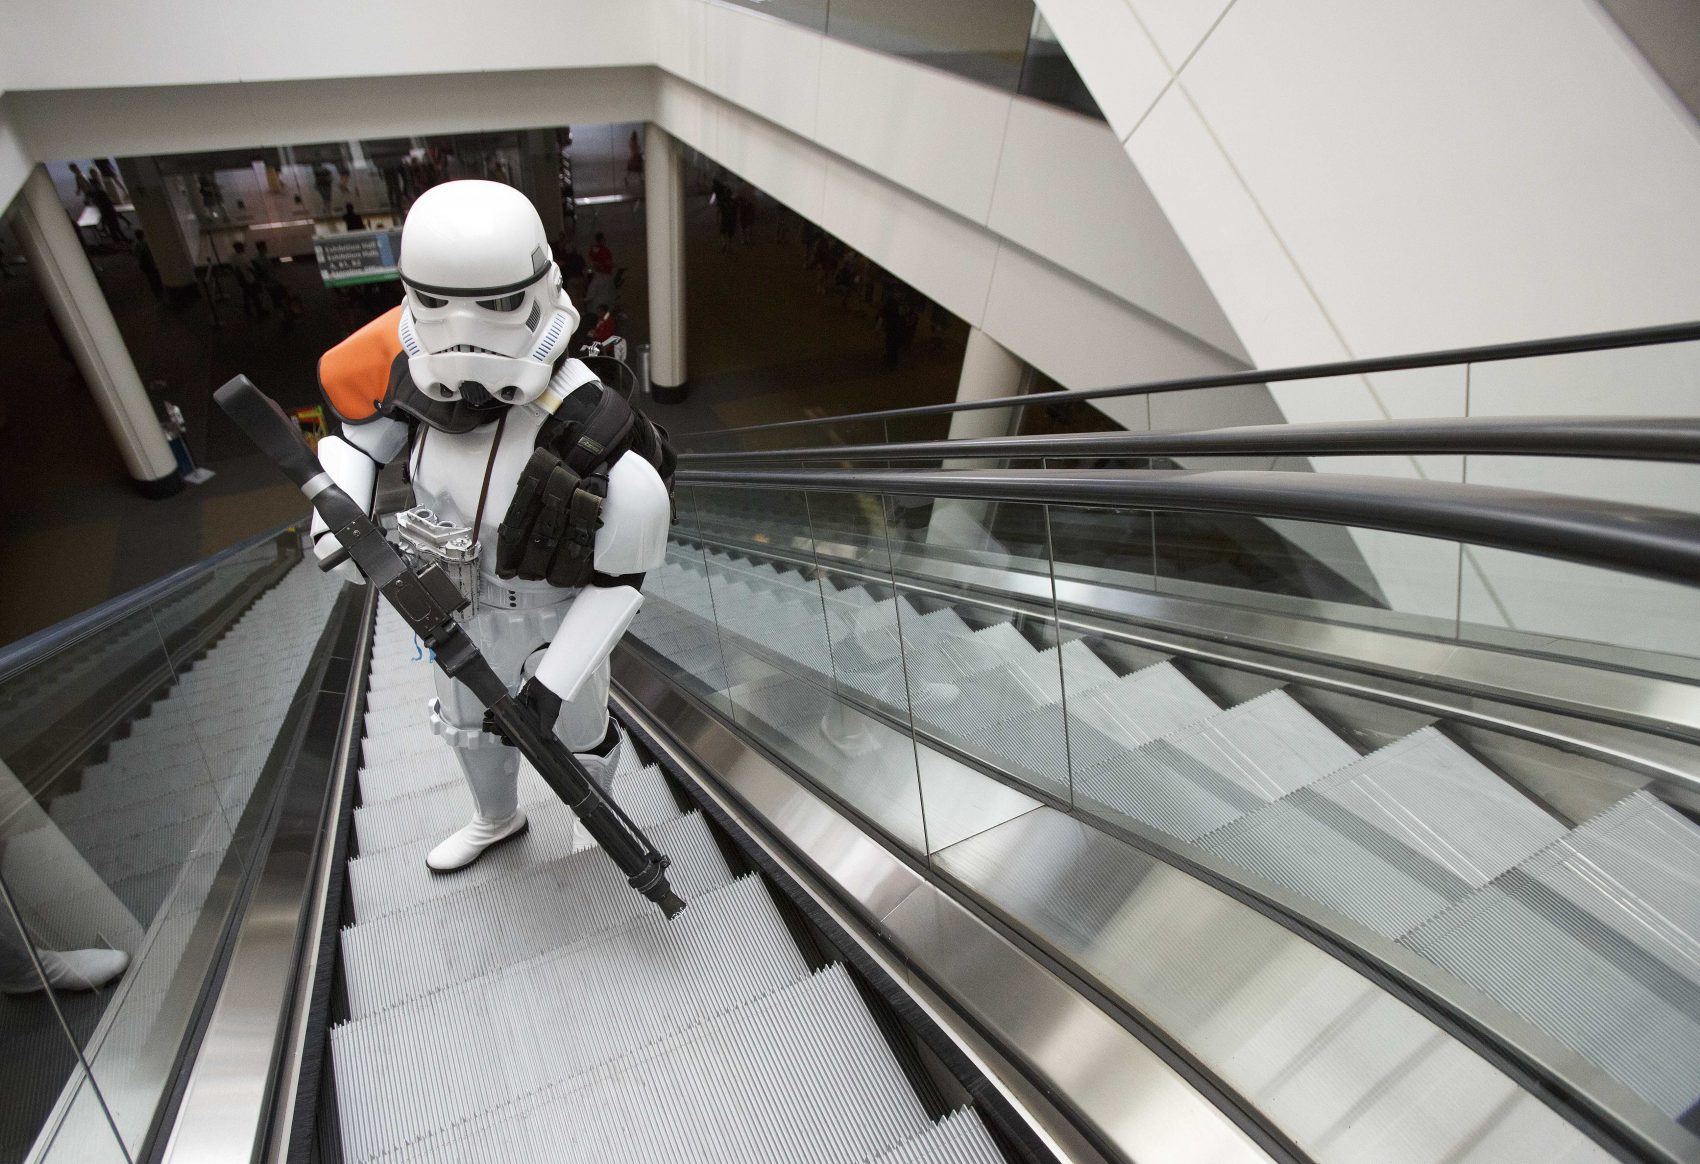 Heindrich Kuhlmann, of Brookline, Mass., rides an escalator dressed as a Star Wars stormtrooper on Friday. The convention was held at the Boston Convention & Exhibition Center through Sunday, August 13th. (AP Photo/Michael Dwyer)